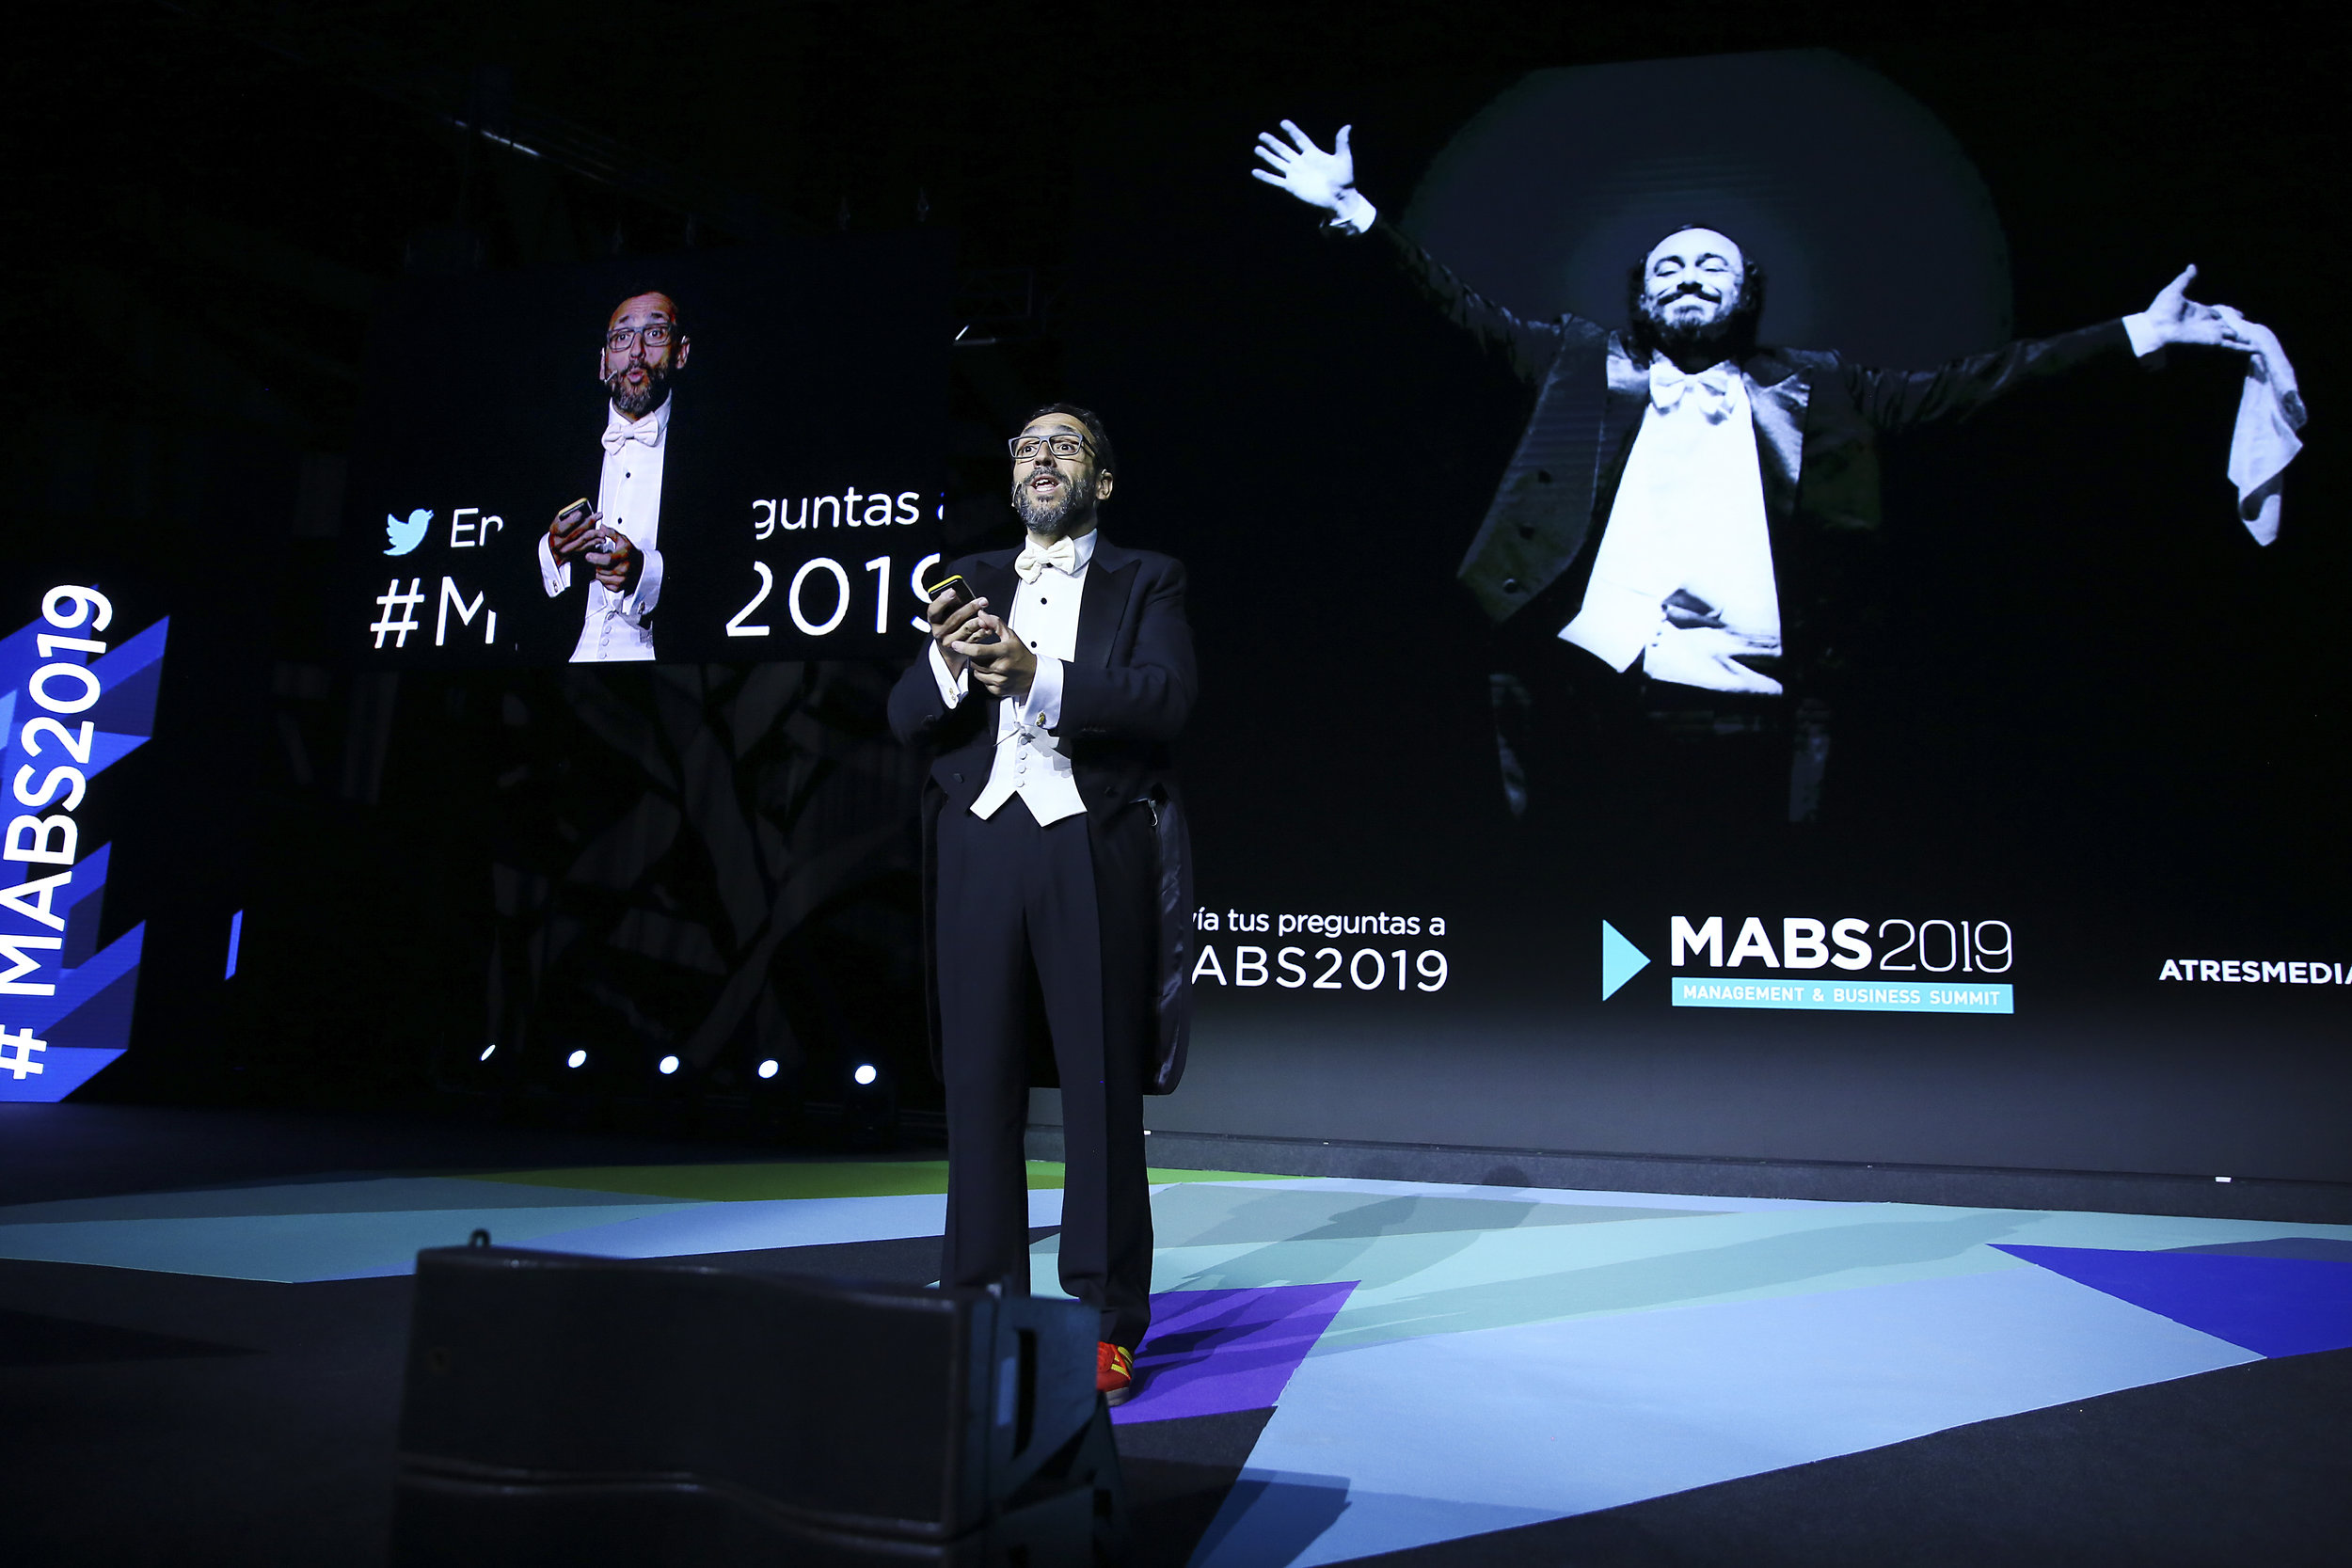 MABS2019